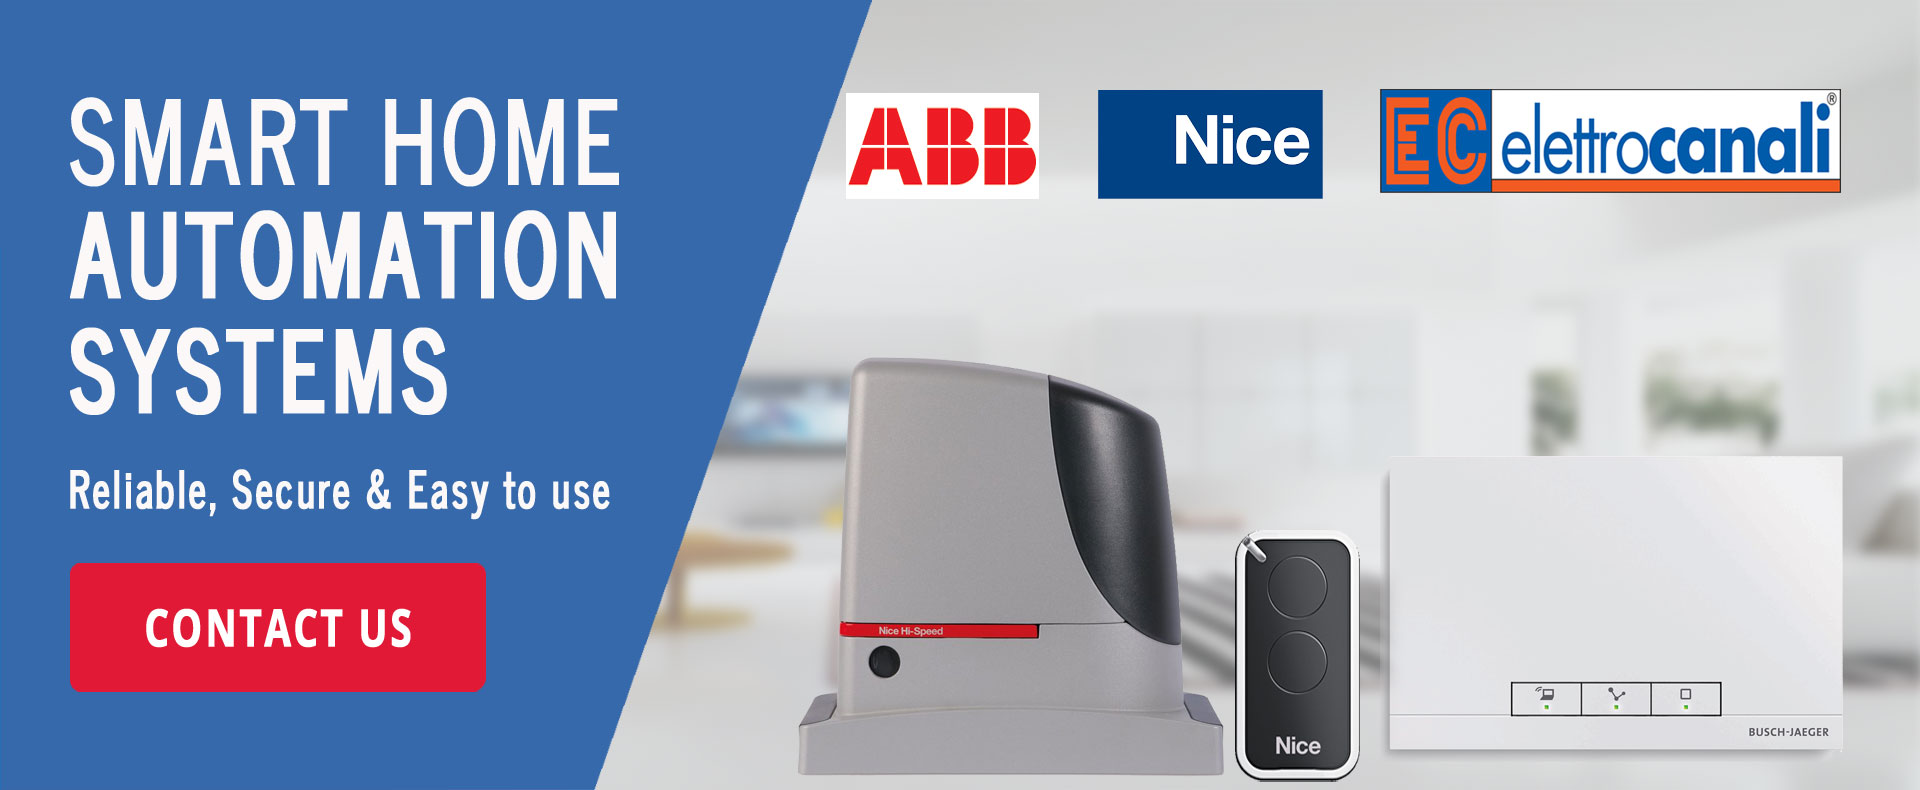 ABB-and-Nice-smarthome-products-lahore-pakistan